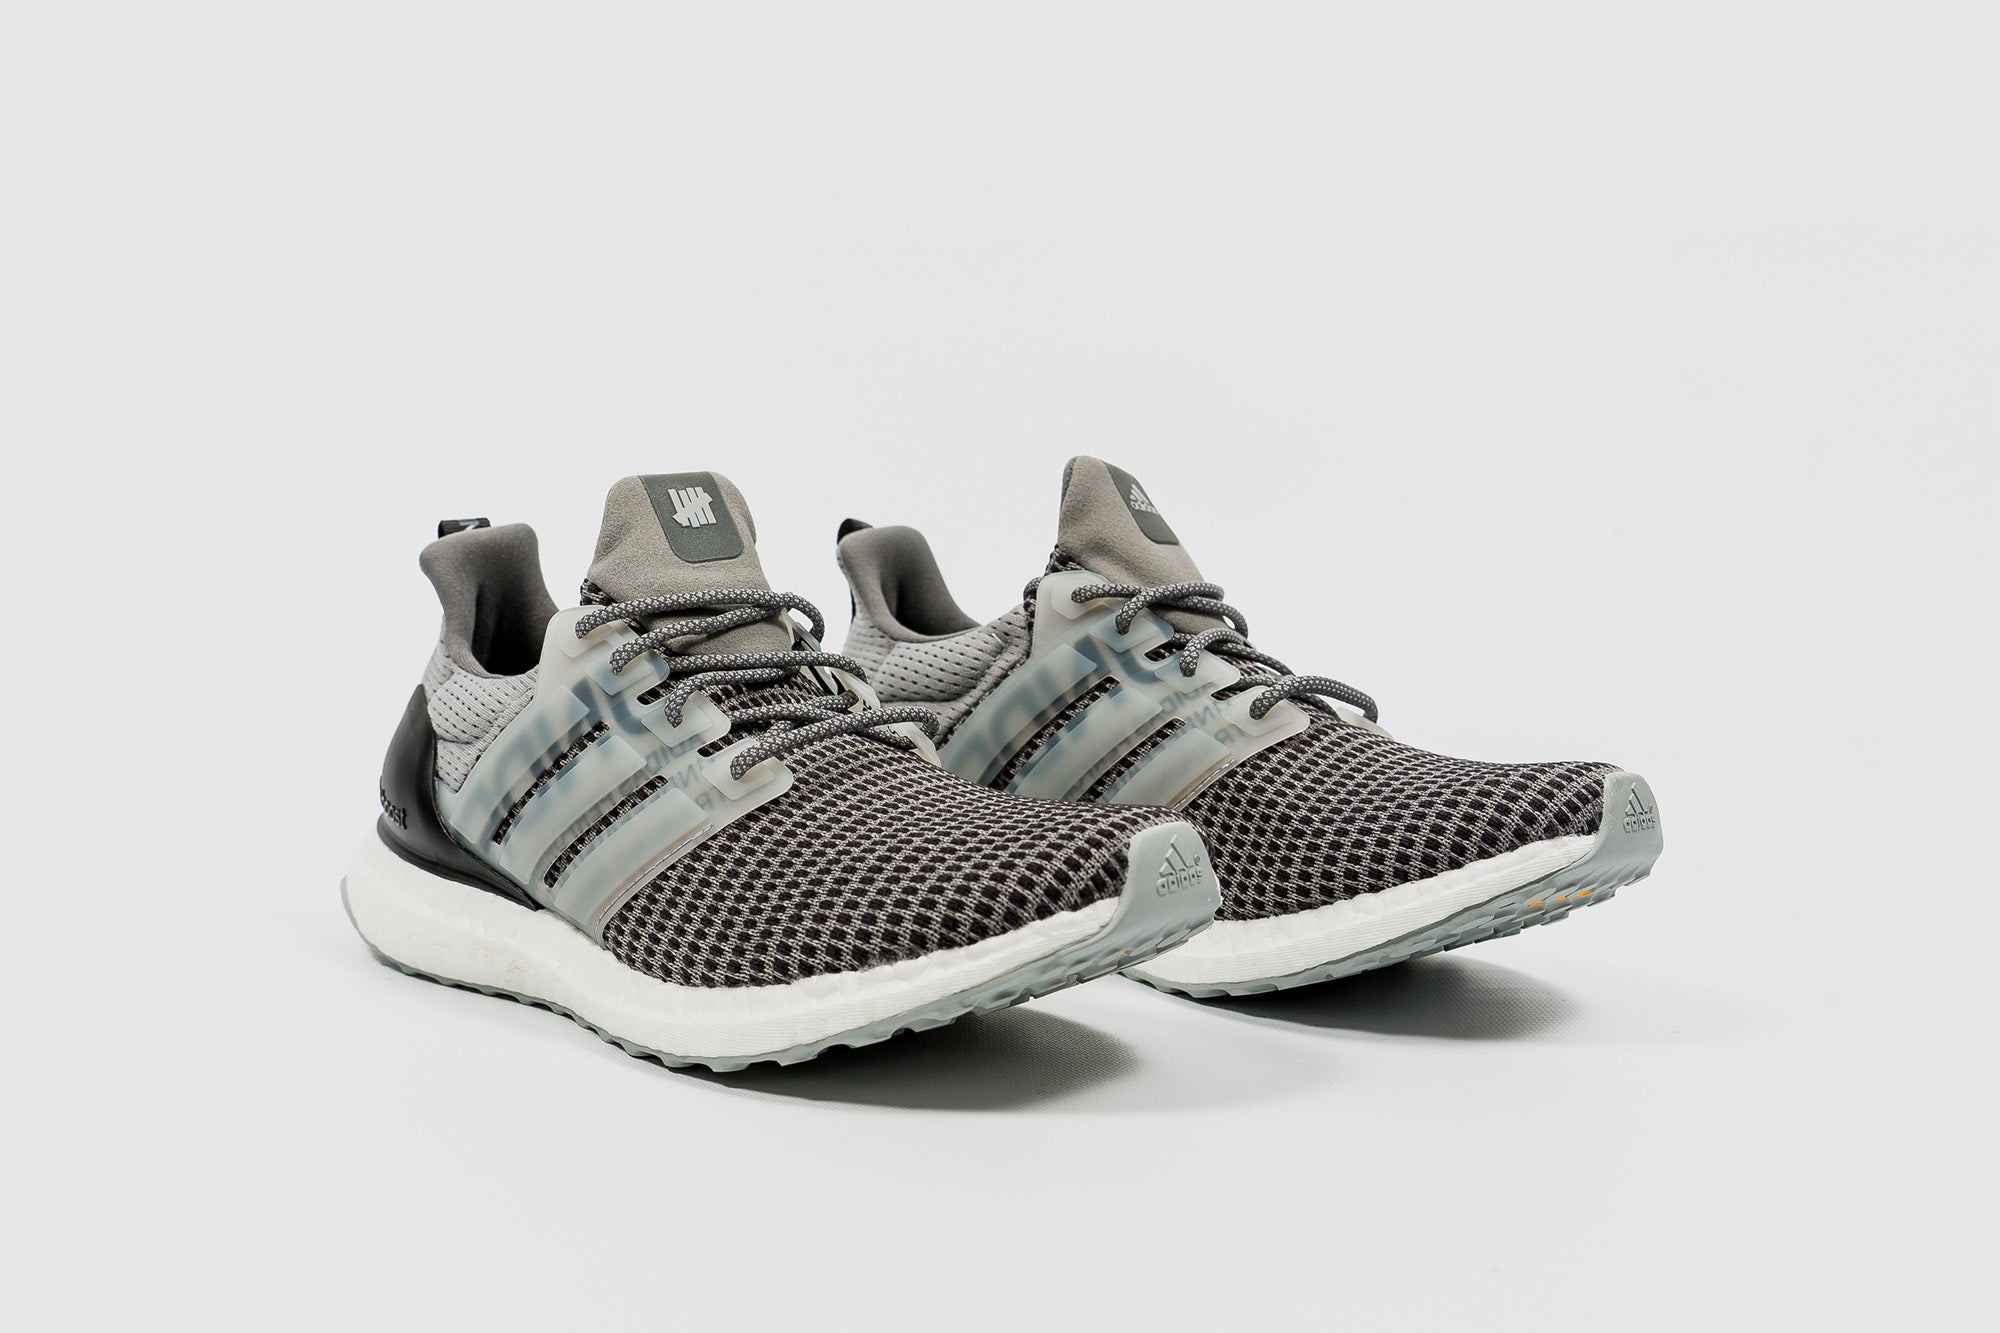 a6d90ad15 ADIDAS ULTRA BOOST X UNDEFEATED – PACKER SHOES